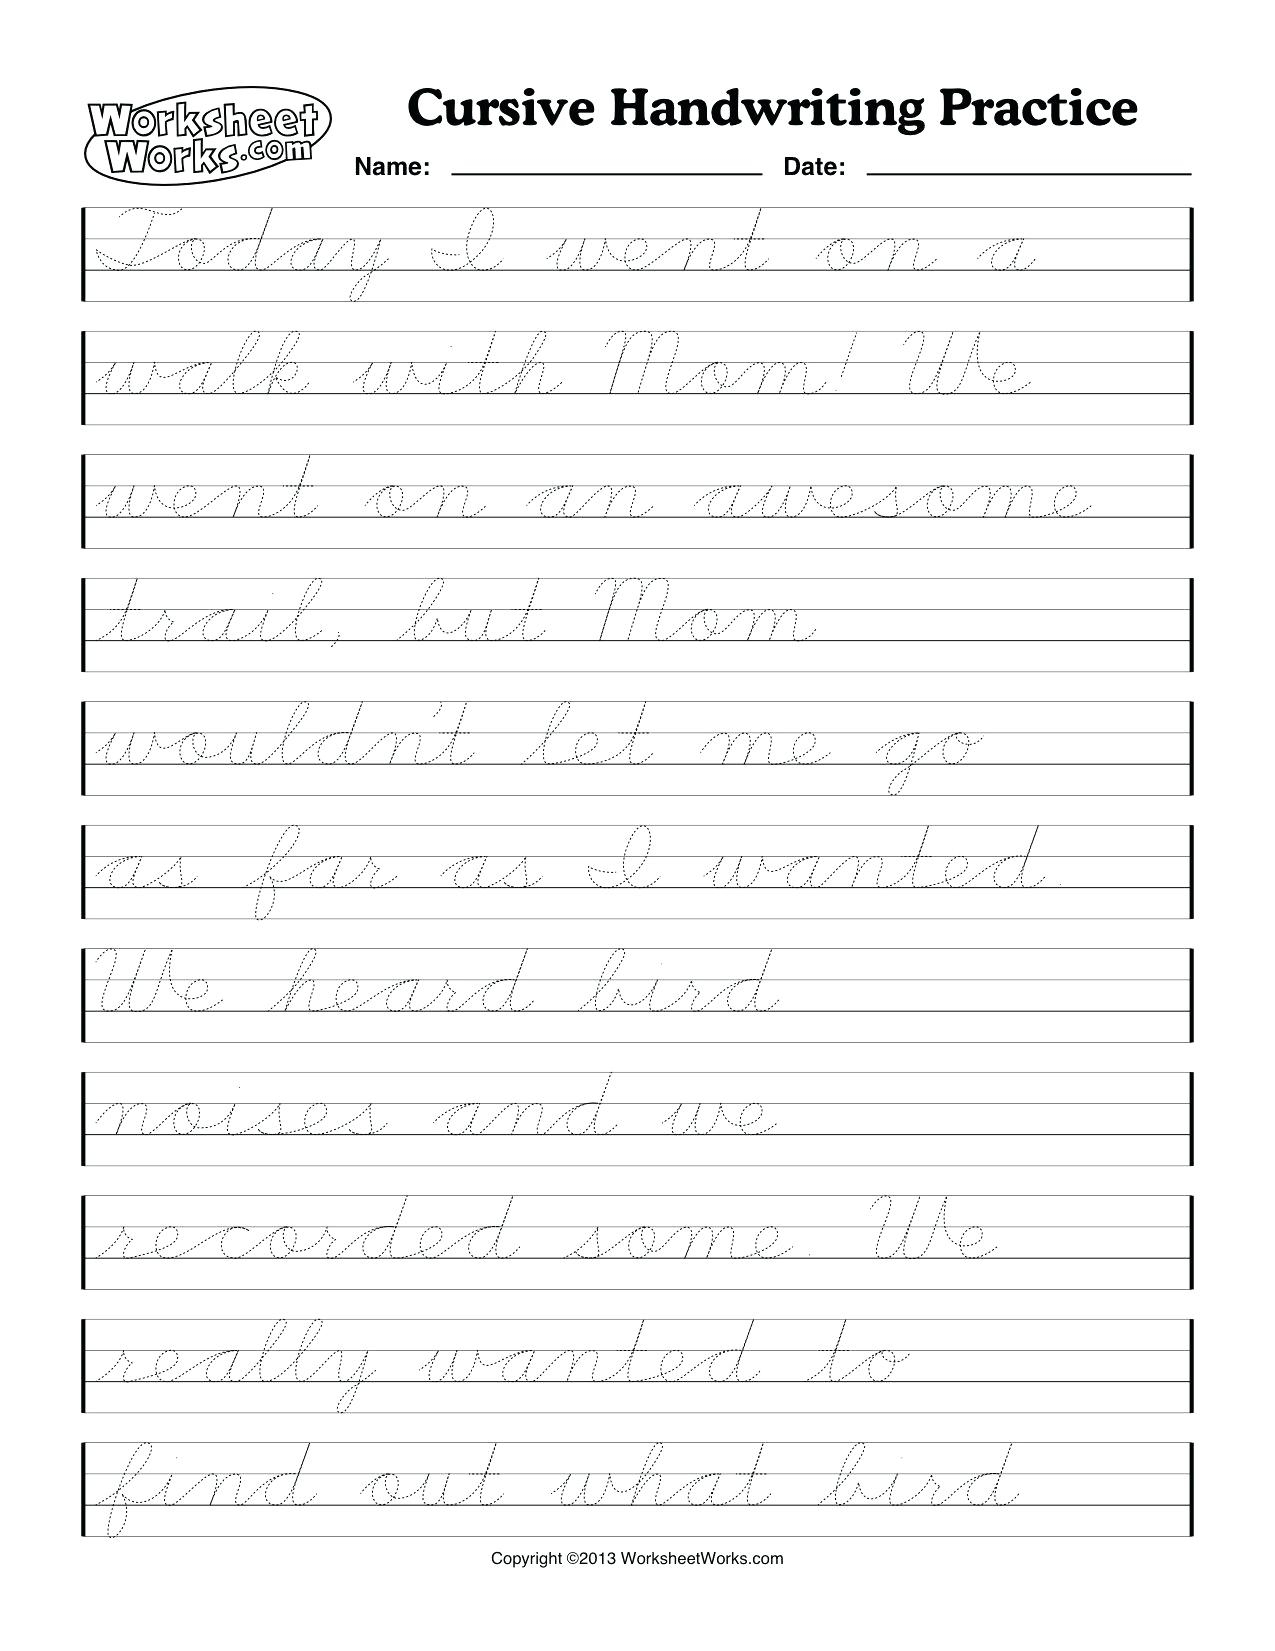 Free Printable Cursive Handwriting Worksheets | Free Printables | Free Printable Cursive Writing Sentences Worksheets